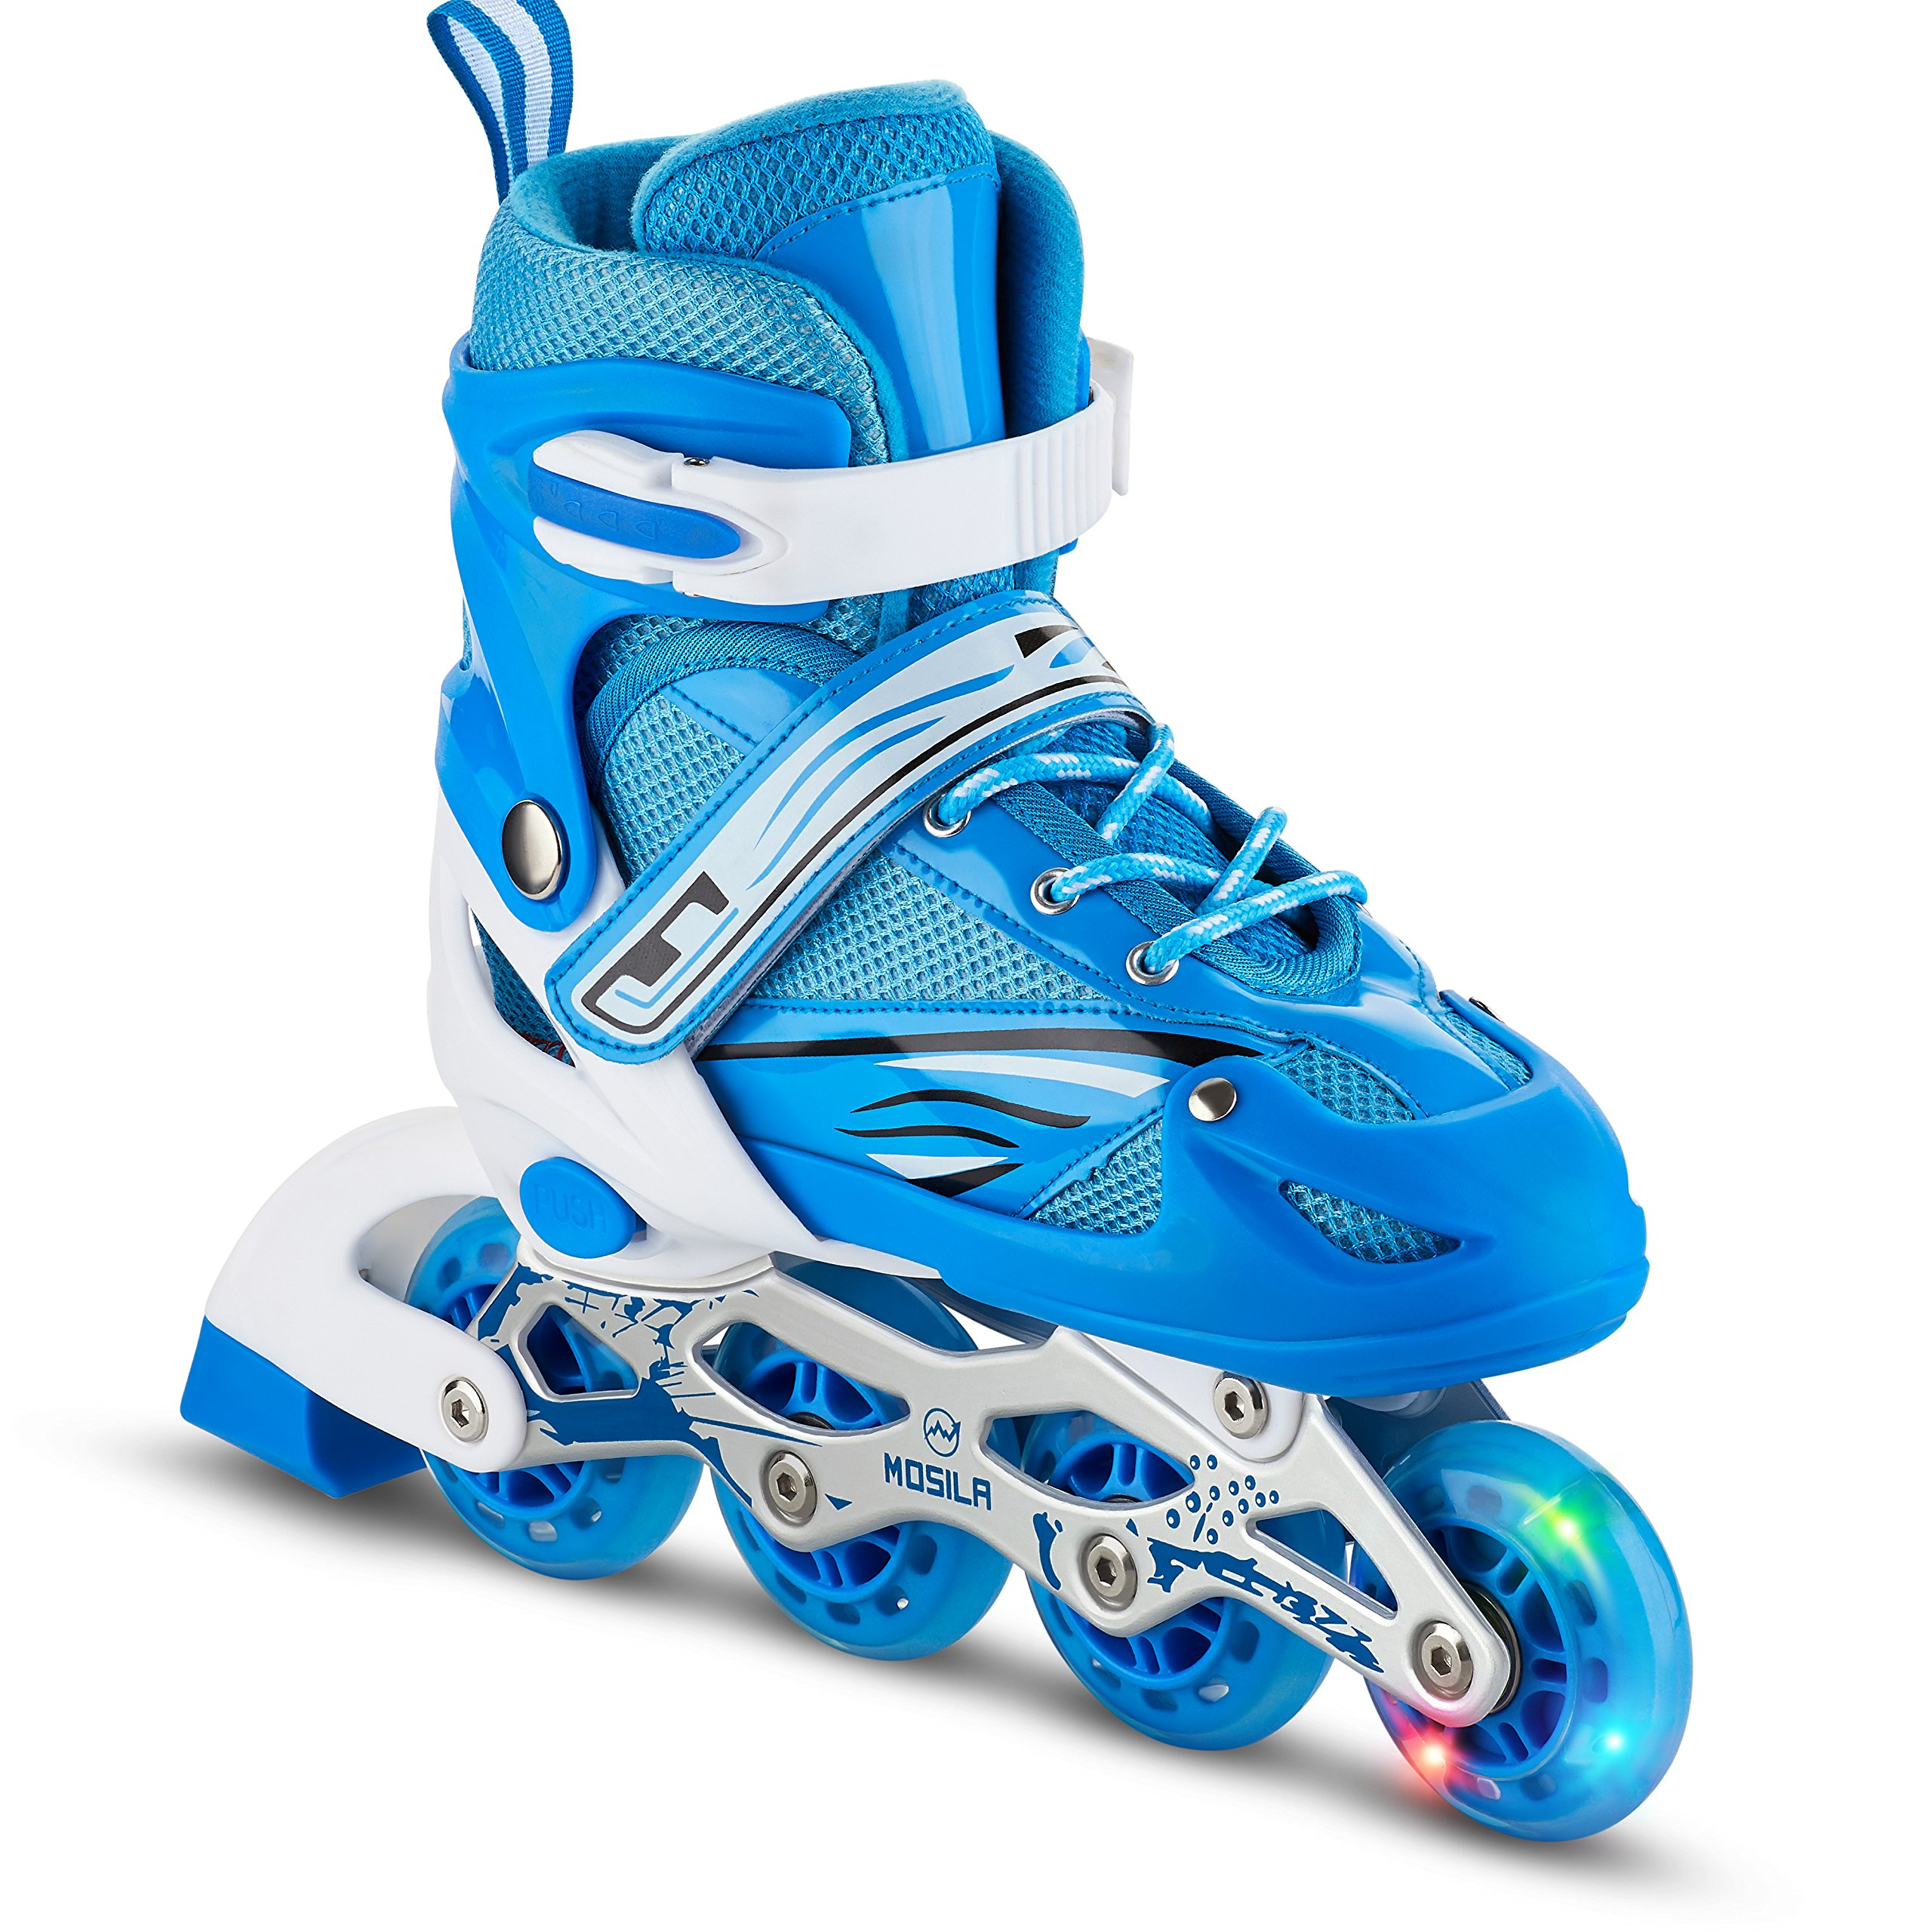 Kids Inline Skates-Top Performance Inline Skate for Girls and Boys-Easily Adjustable ,Fits US Kids Size 3-5,Expands As Your Child Grows-Light Up Front Wheel and Low Friction Wheels-by MOSILA